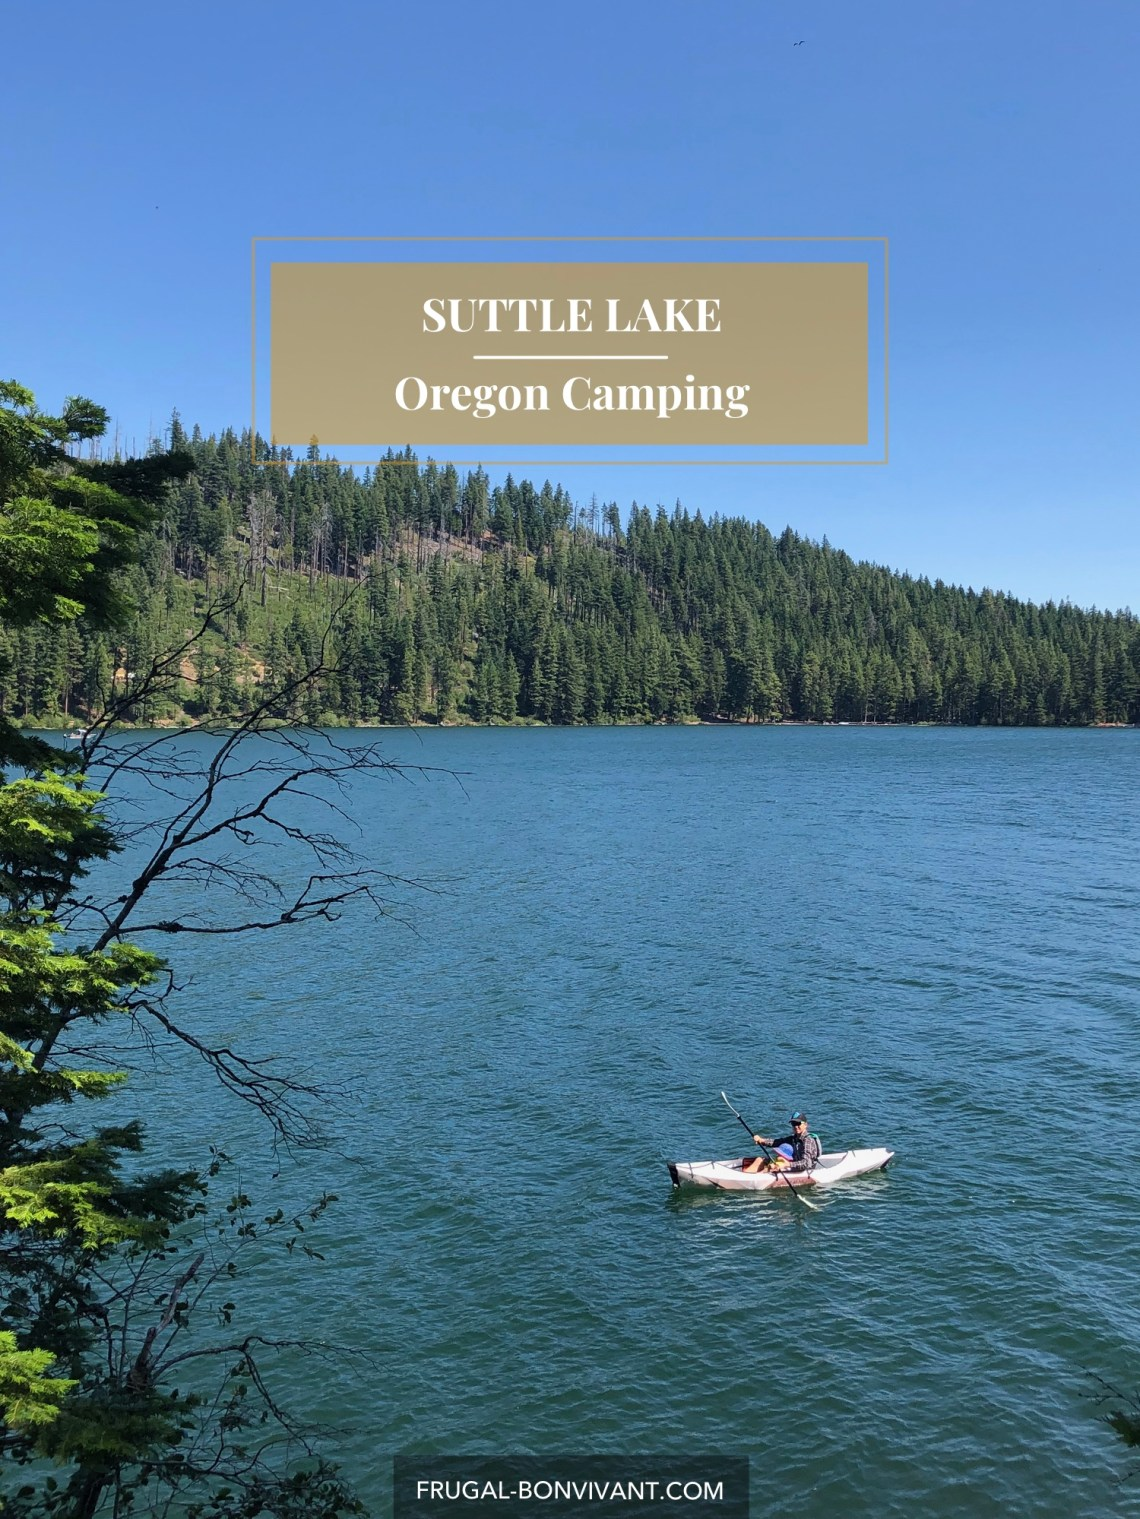 Suttle lake kayaking and camping